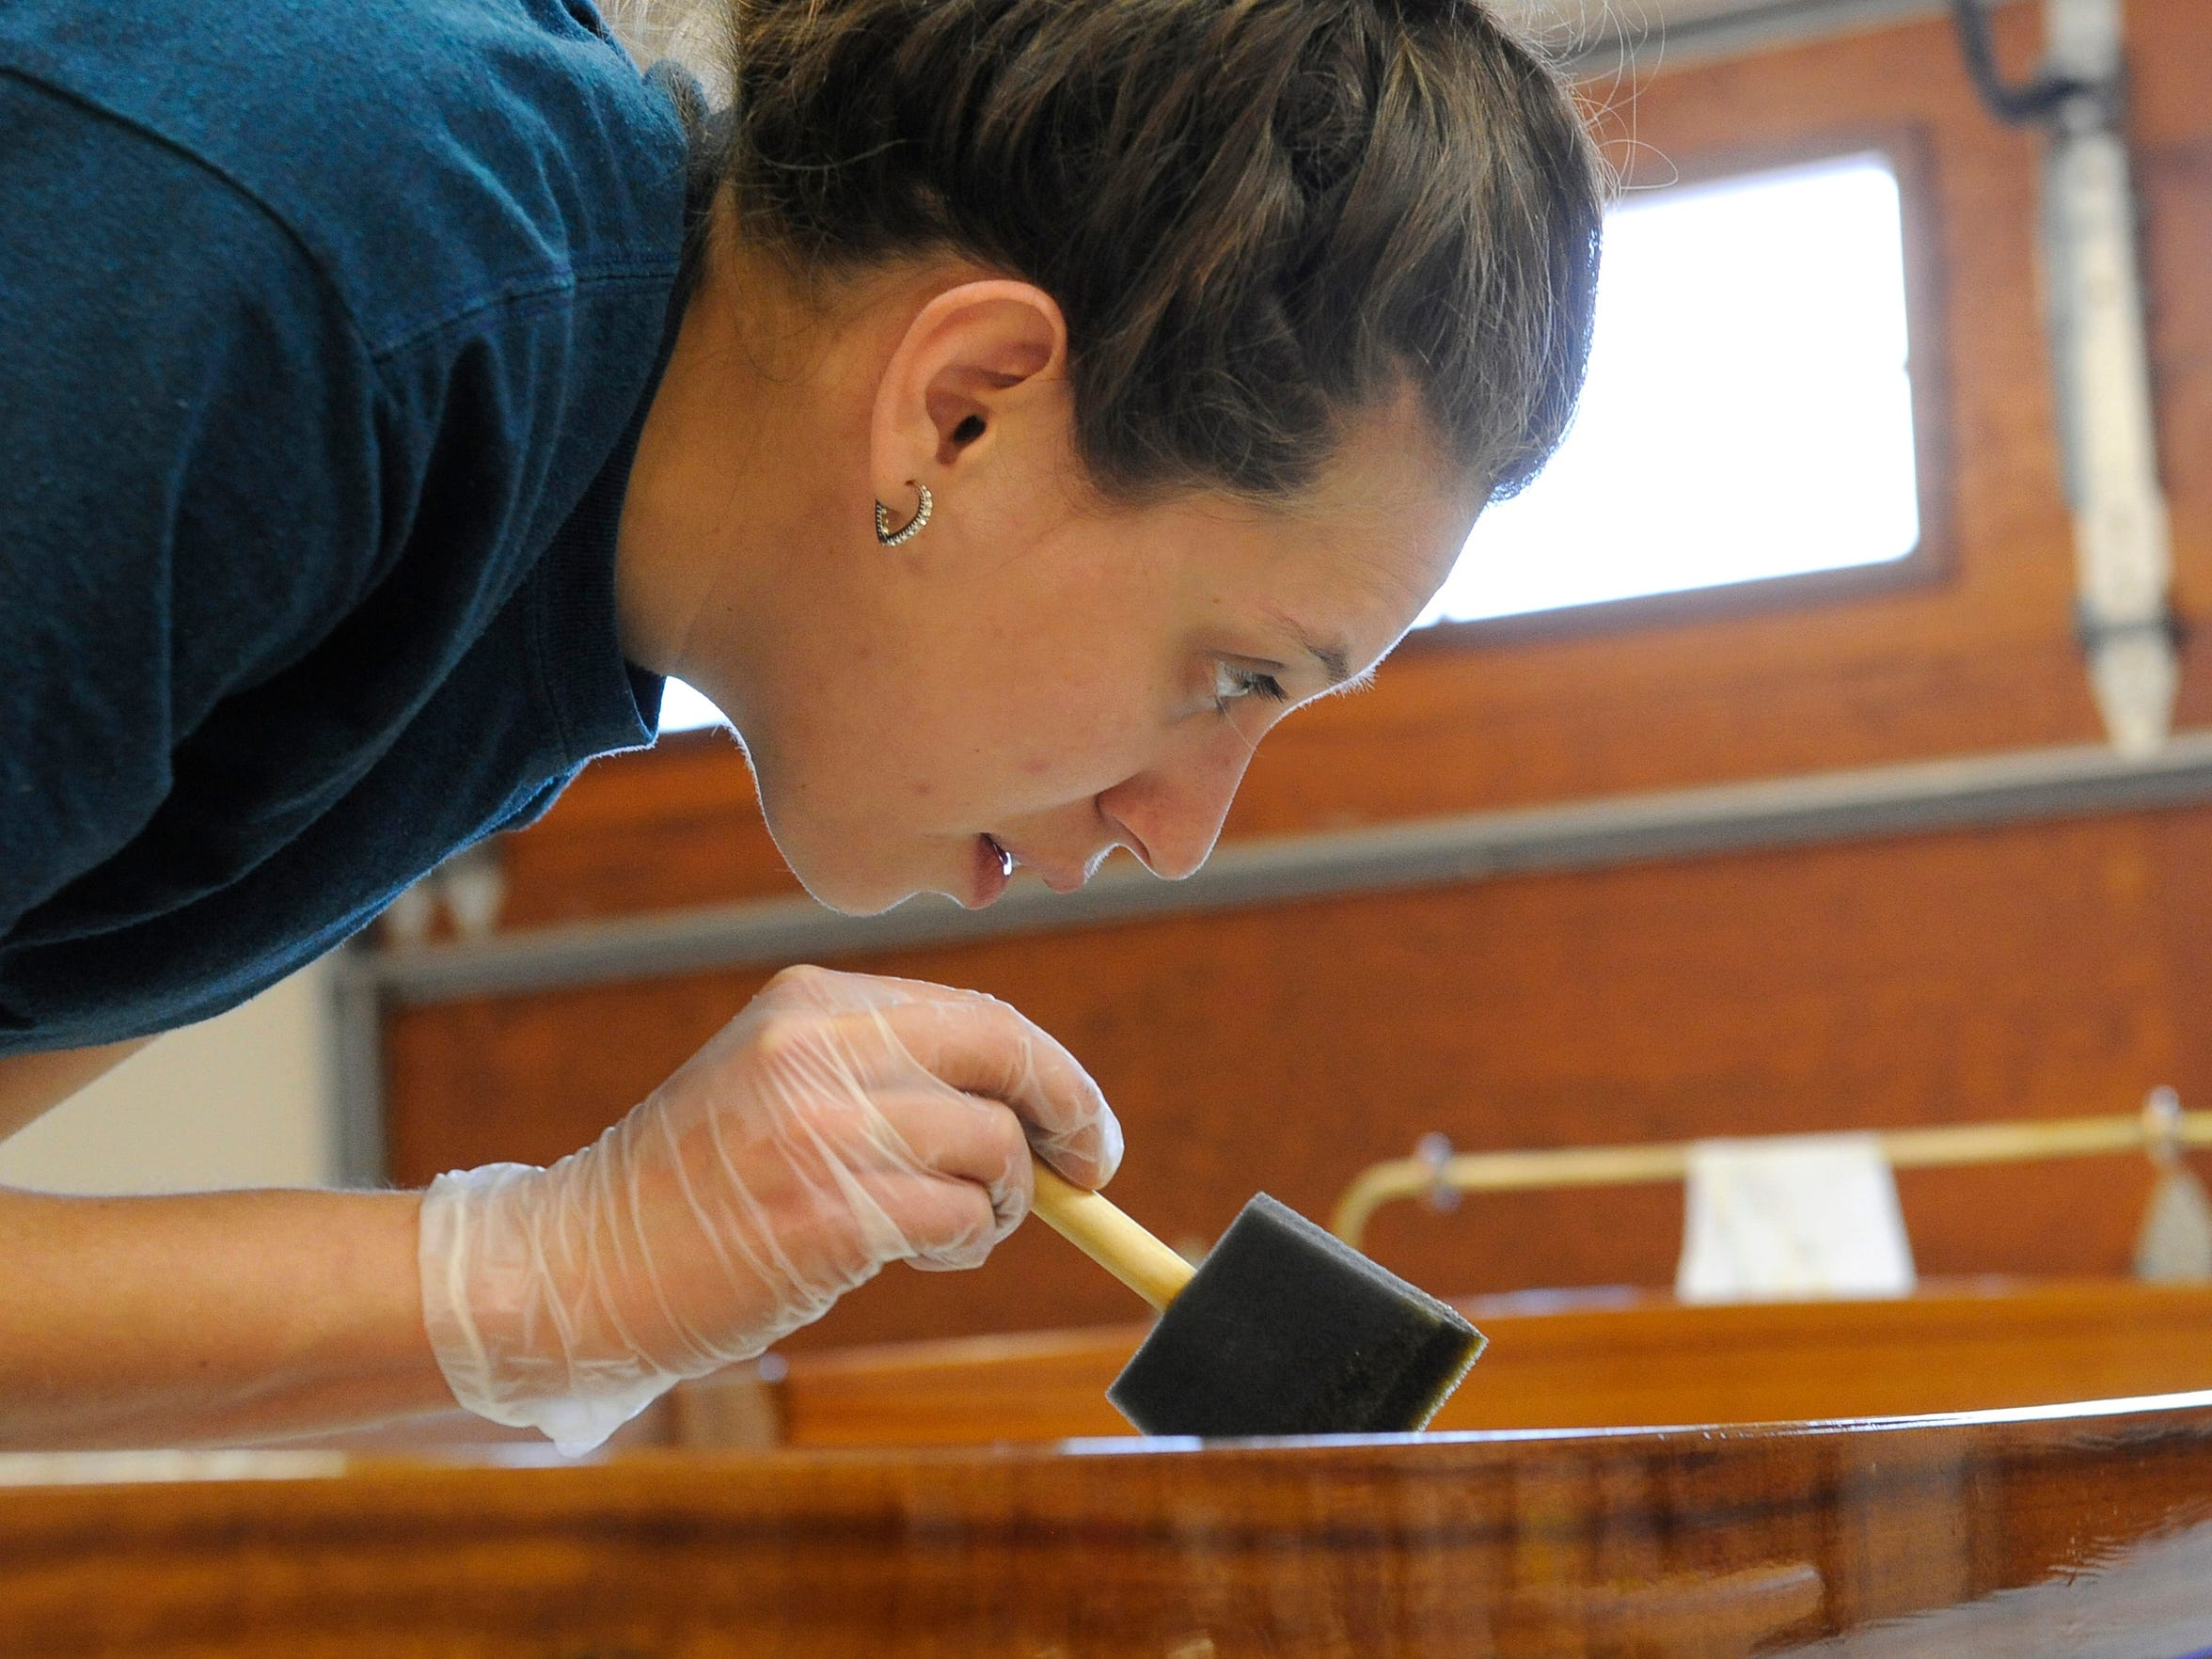 Angela Stober is meticulous as she applies fine varnish